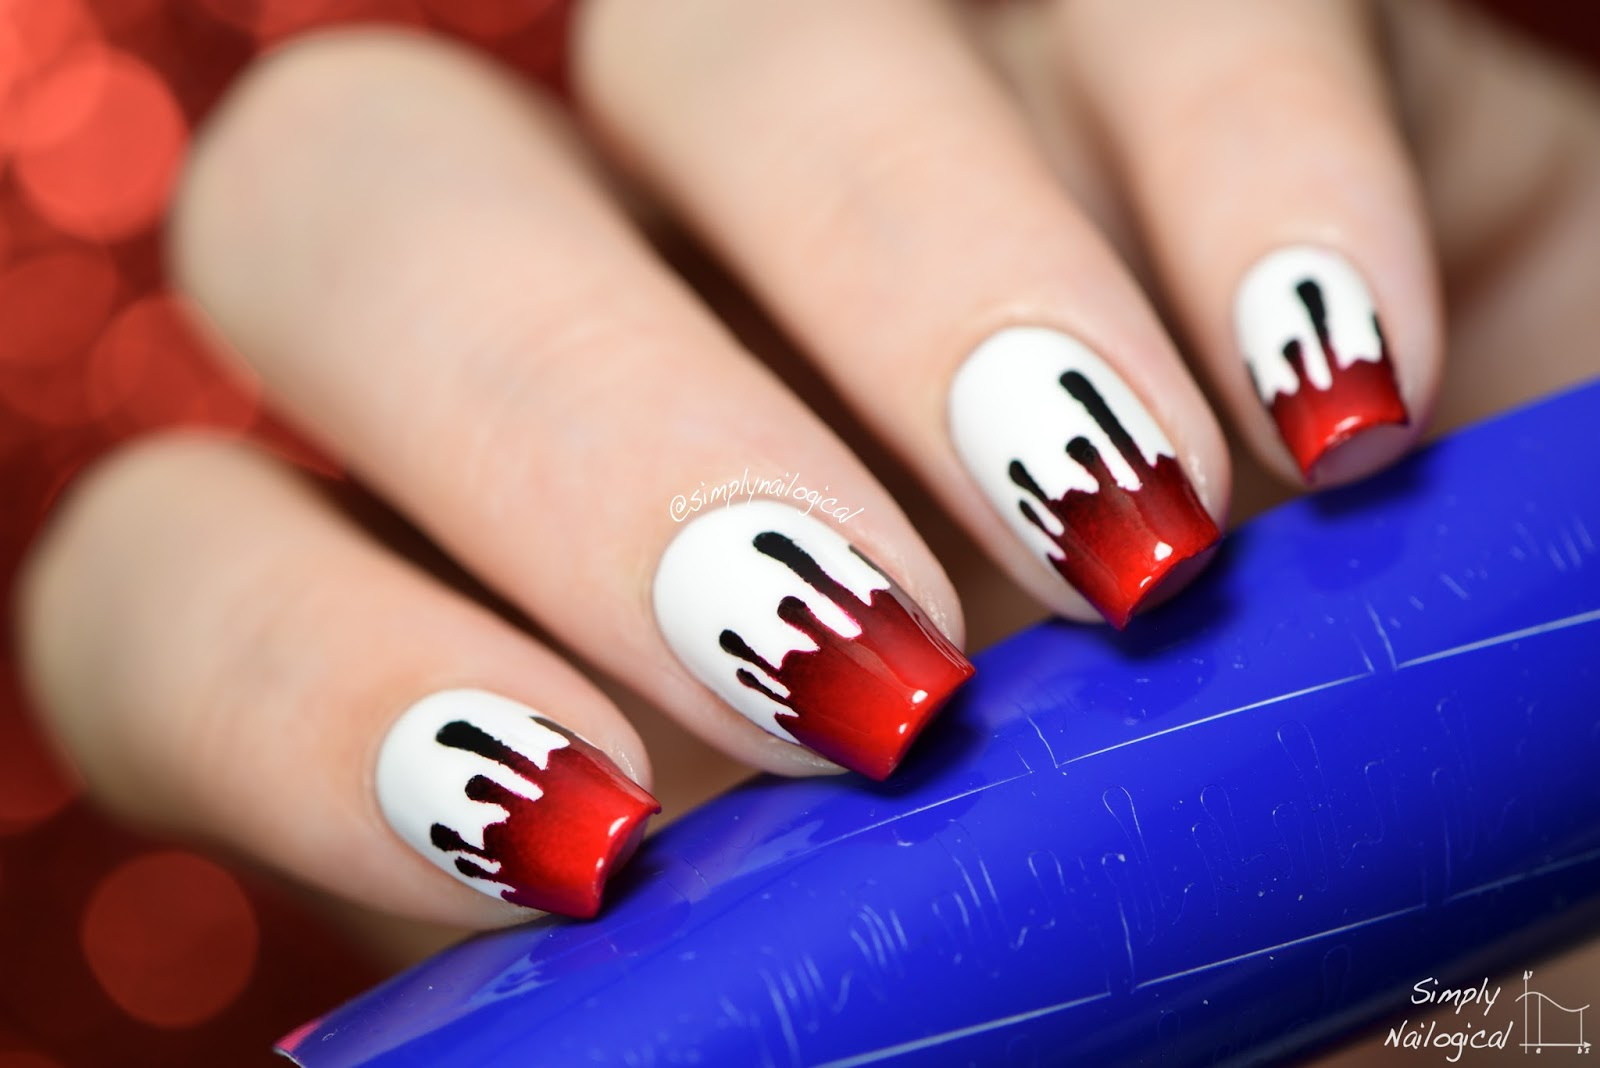 Simply nailogical taylor swift bad blood nails paint drip vinyls from twinkled t use my code simply for 10 off prinsesfo Choice Image